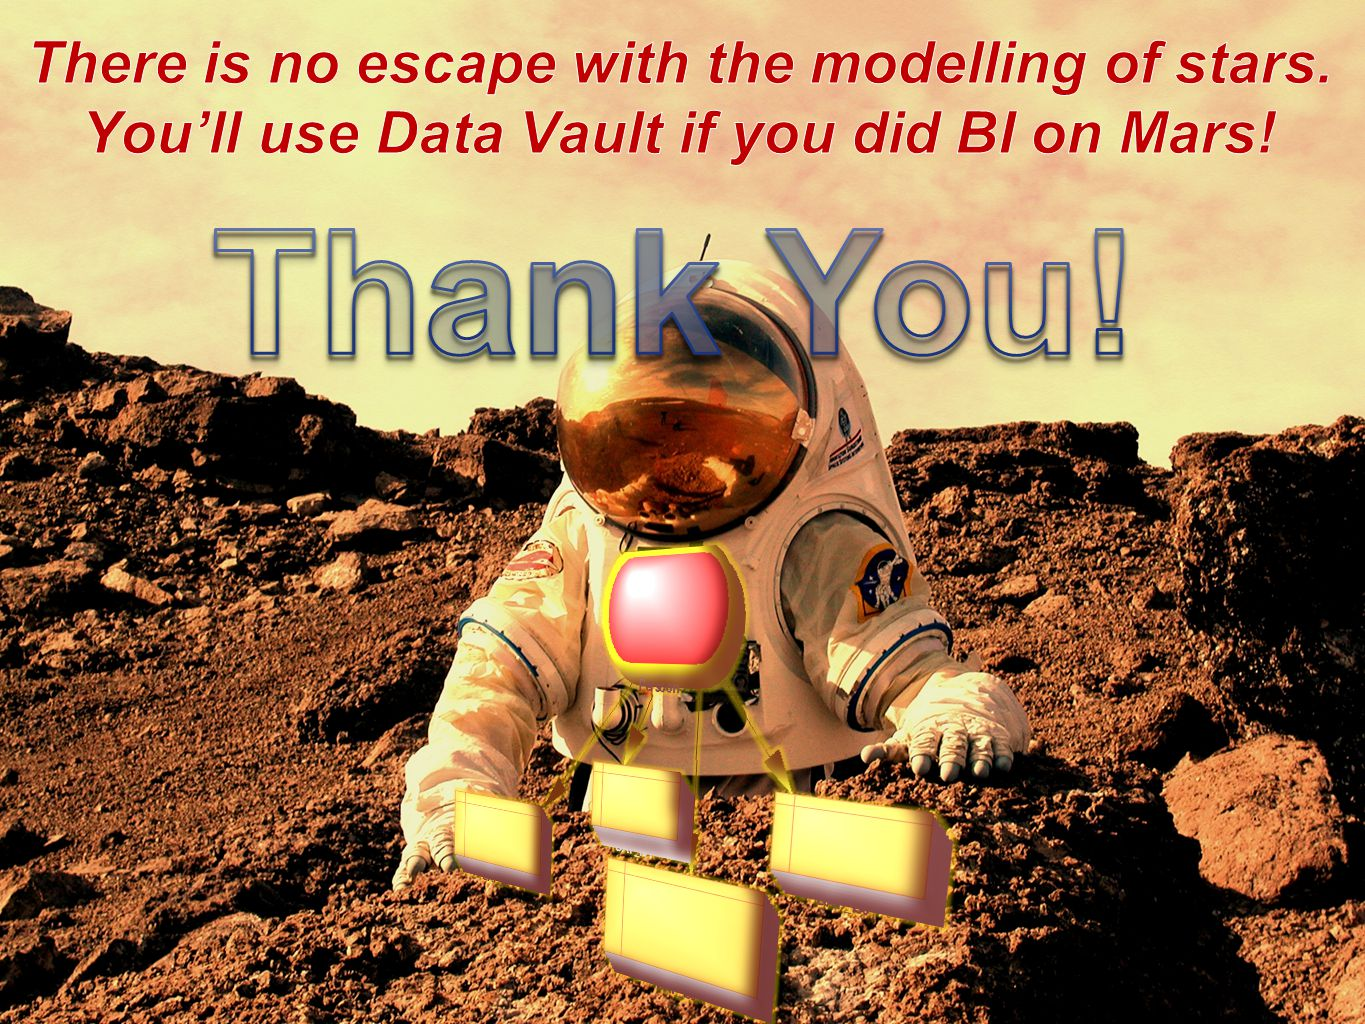 Thank You! There is no escape with the modelling of stars.